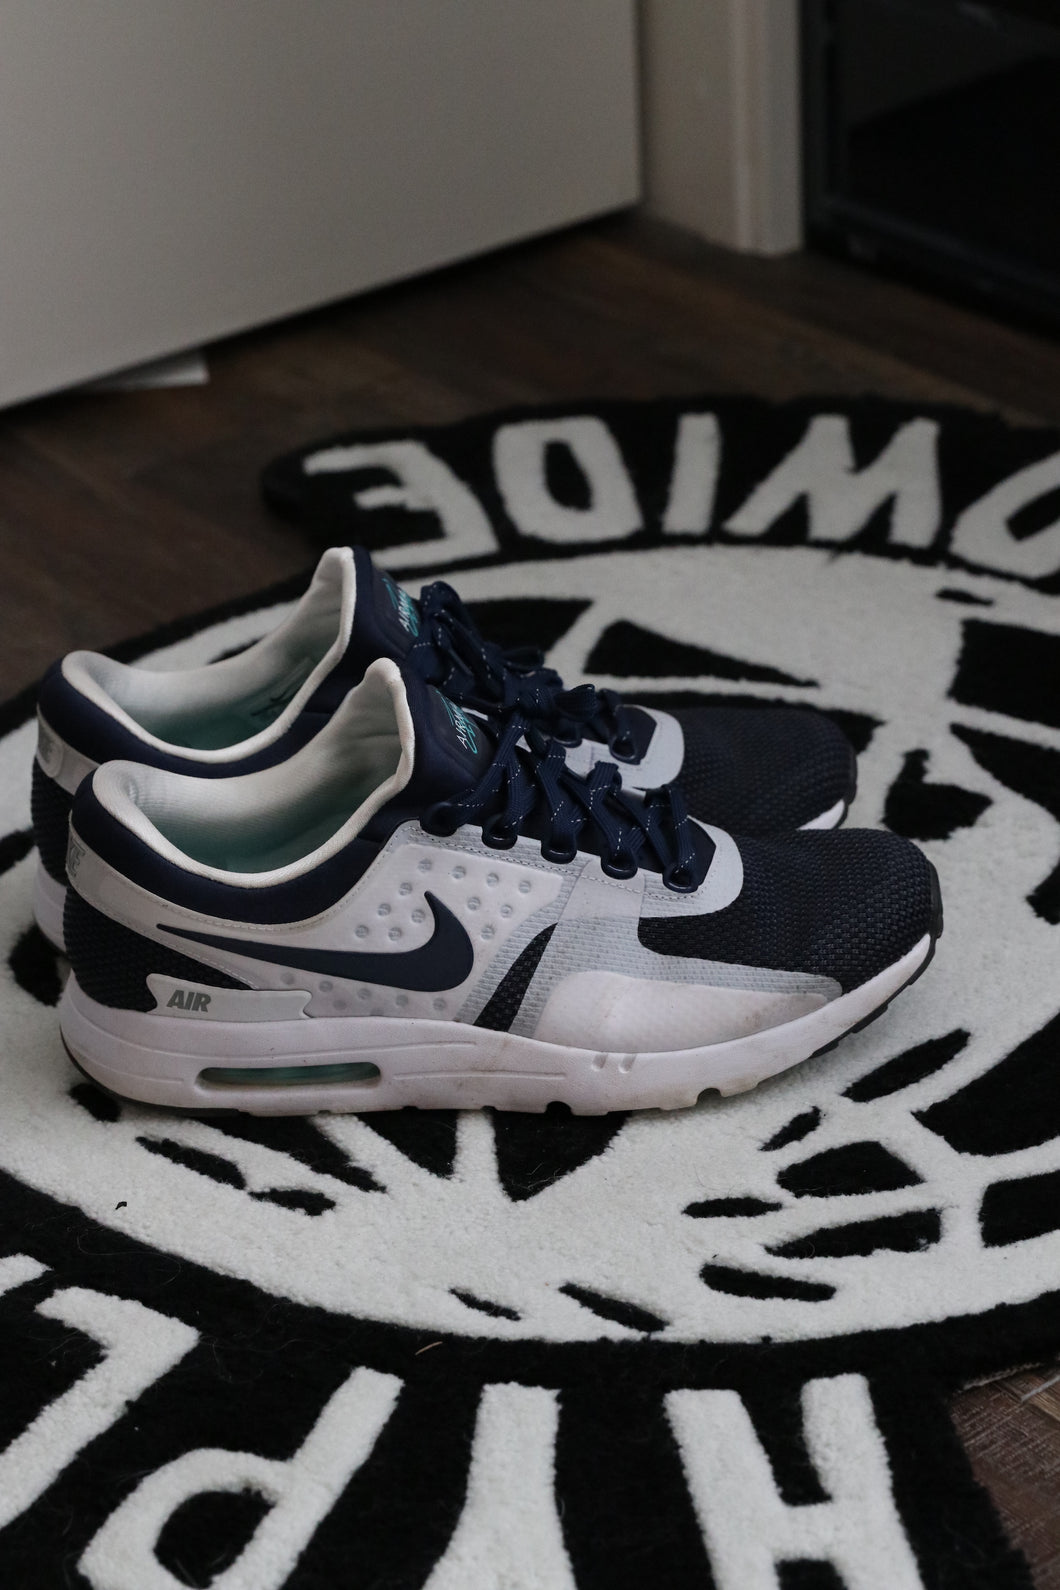 Nike Air Max Zero QS | Worn | Size 12.5